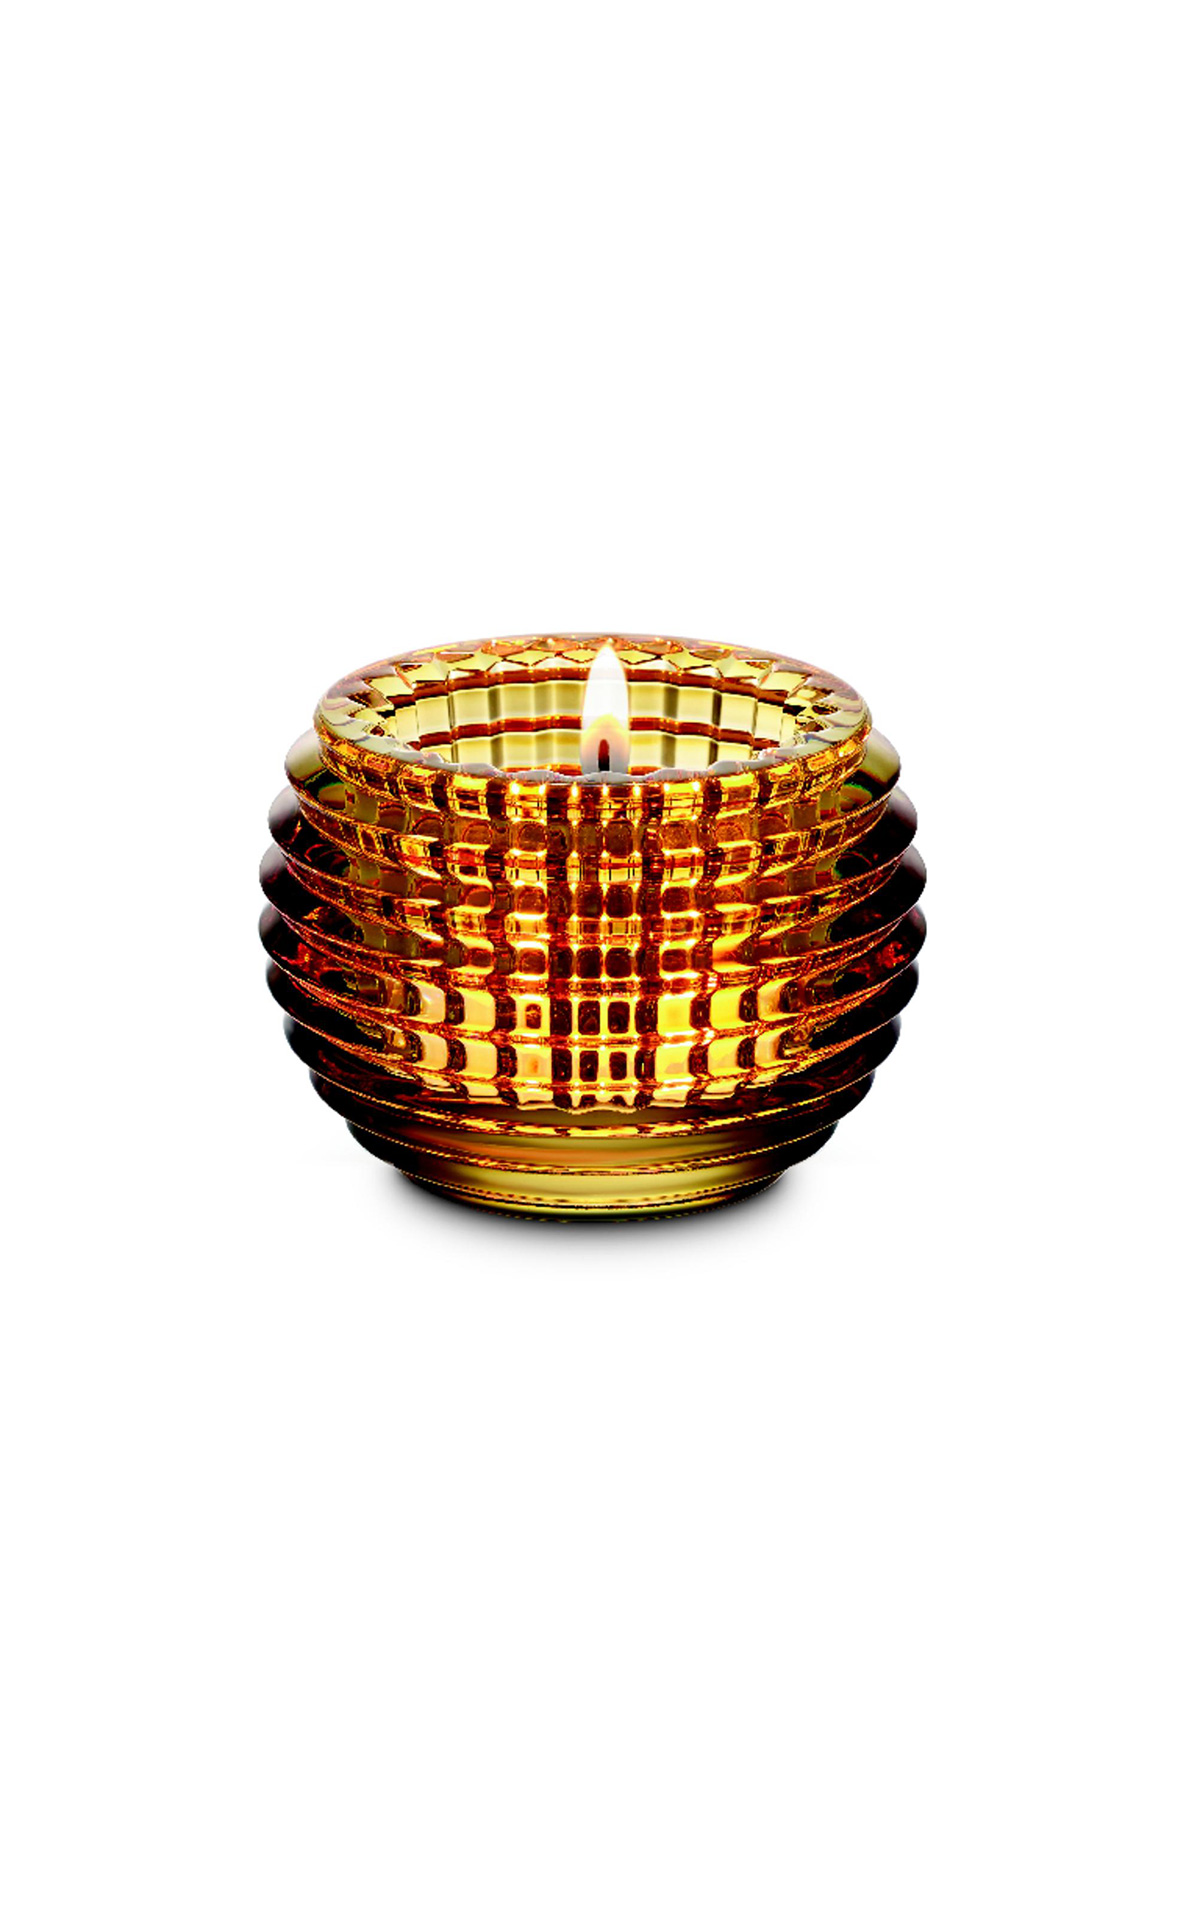 Baccarat yellow Eye candle holder | La Vallée Village